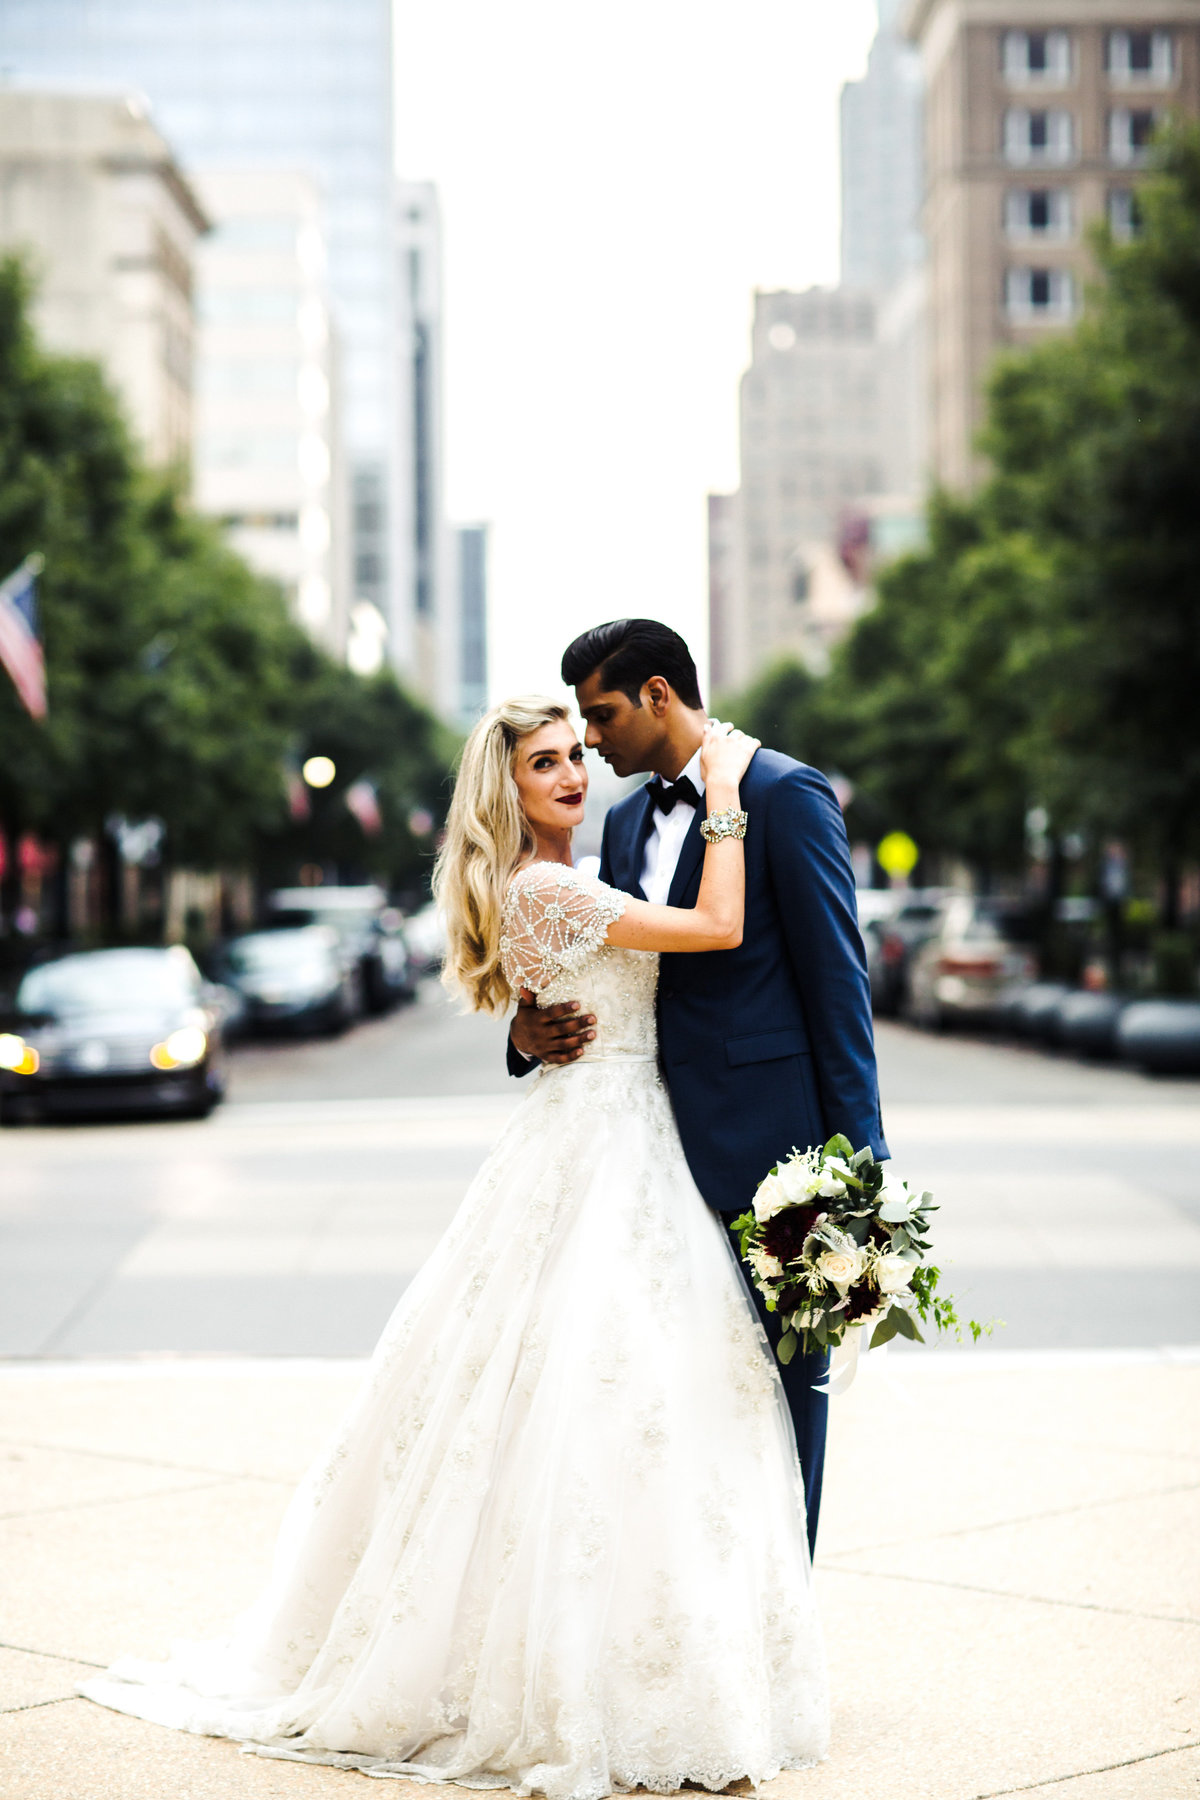 Charlotte wedding Photography Rlaigh Capital 31